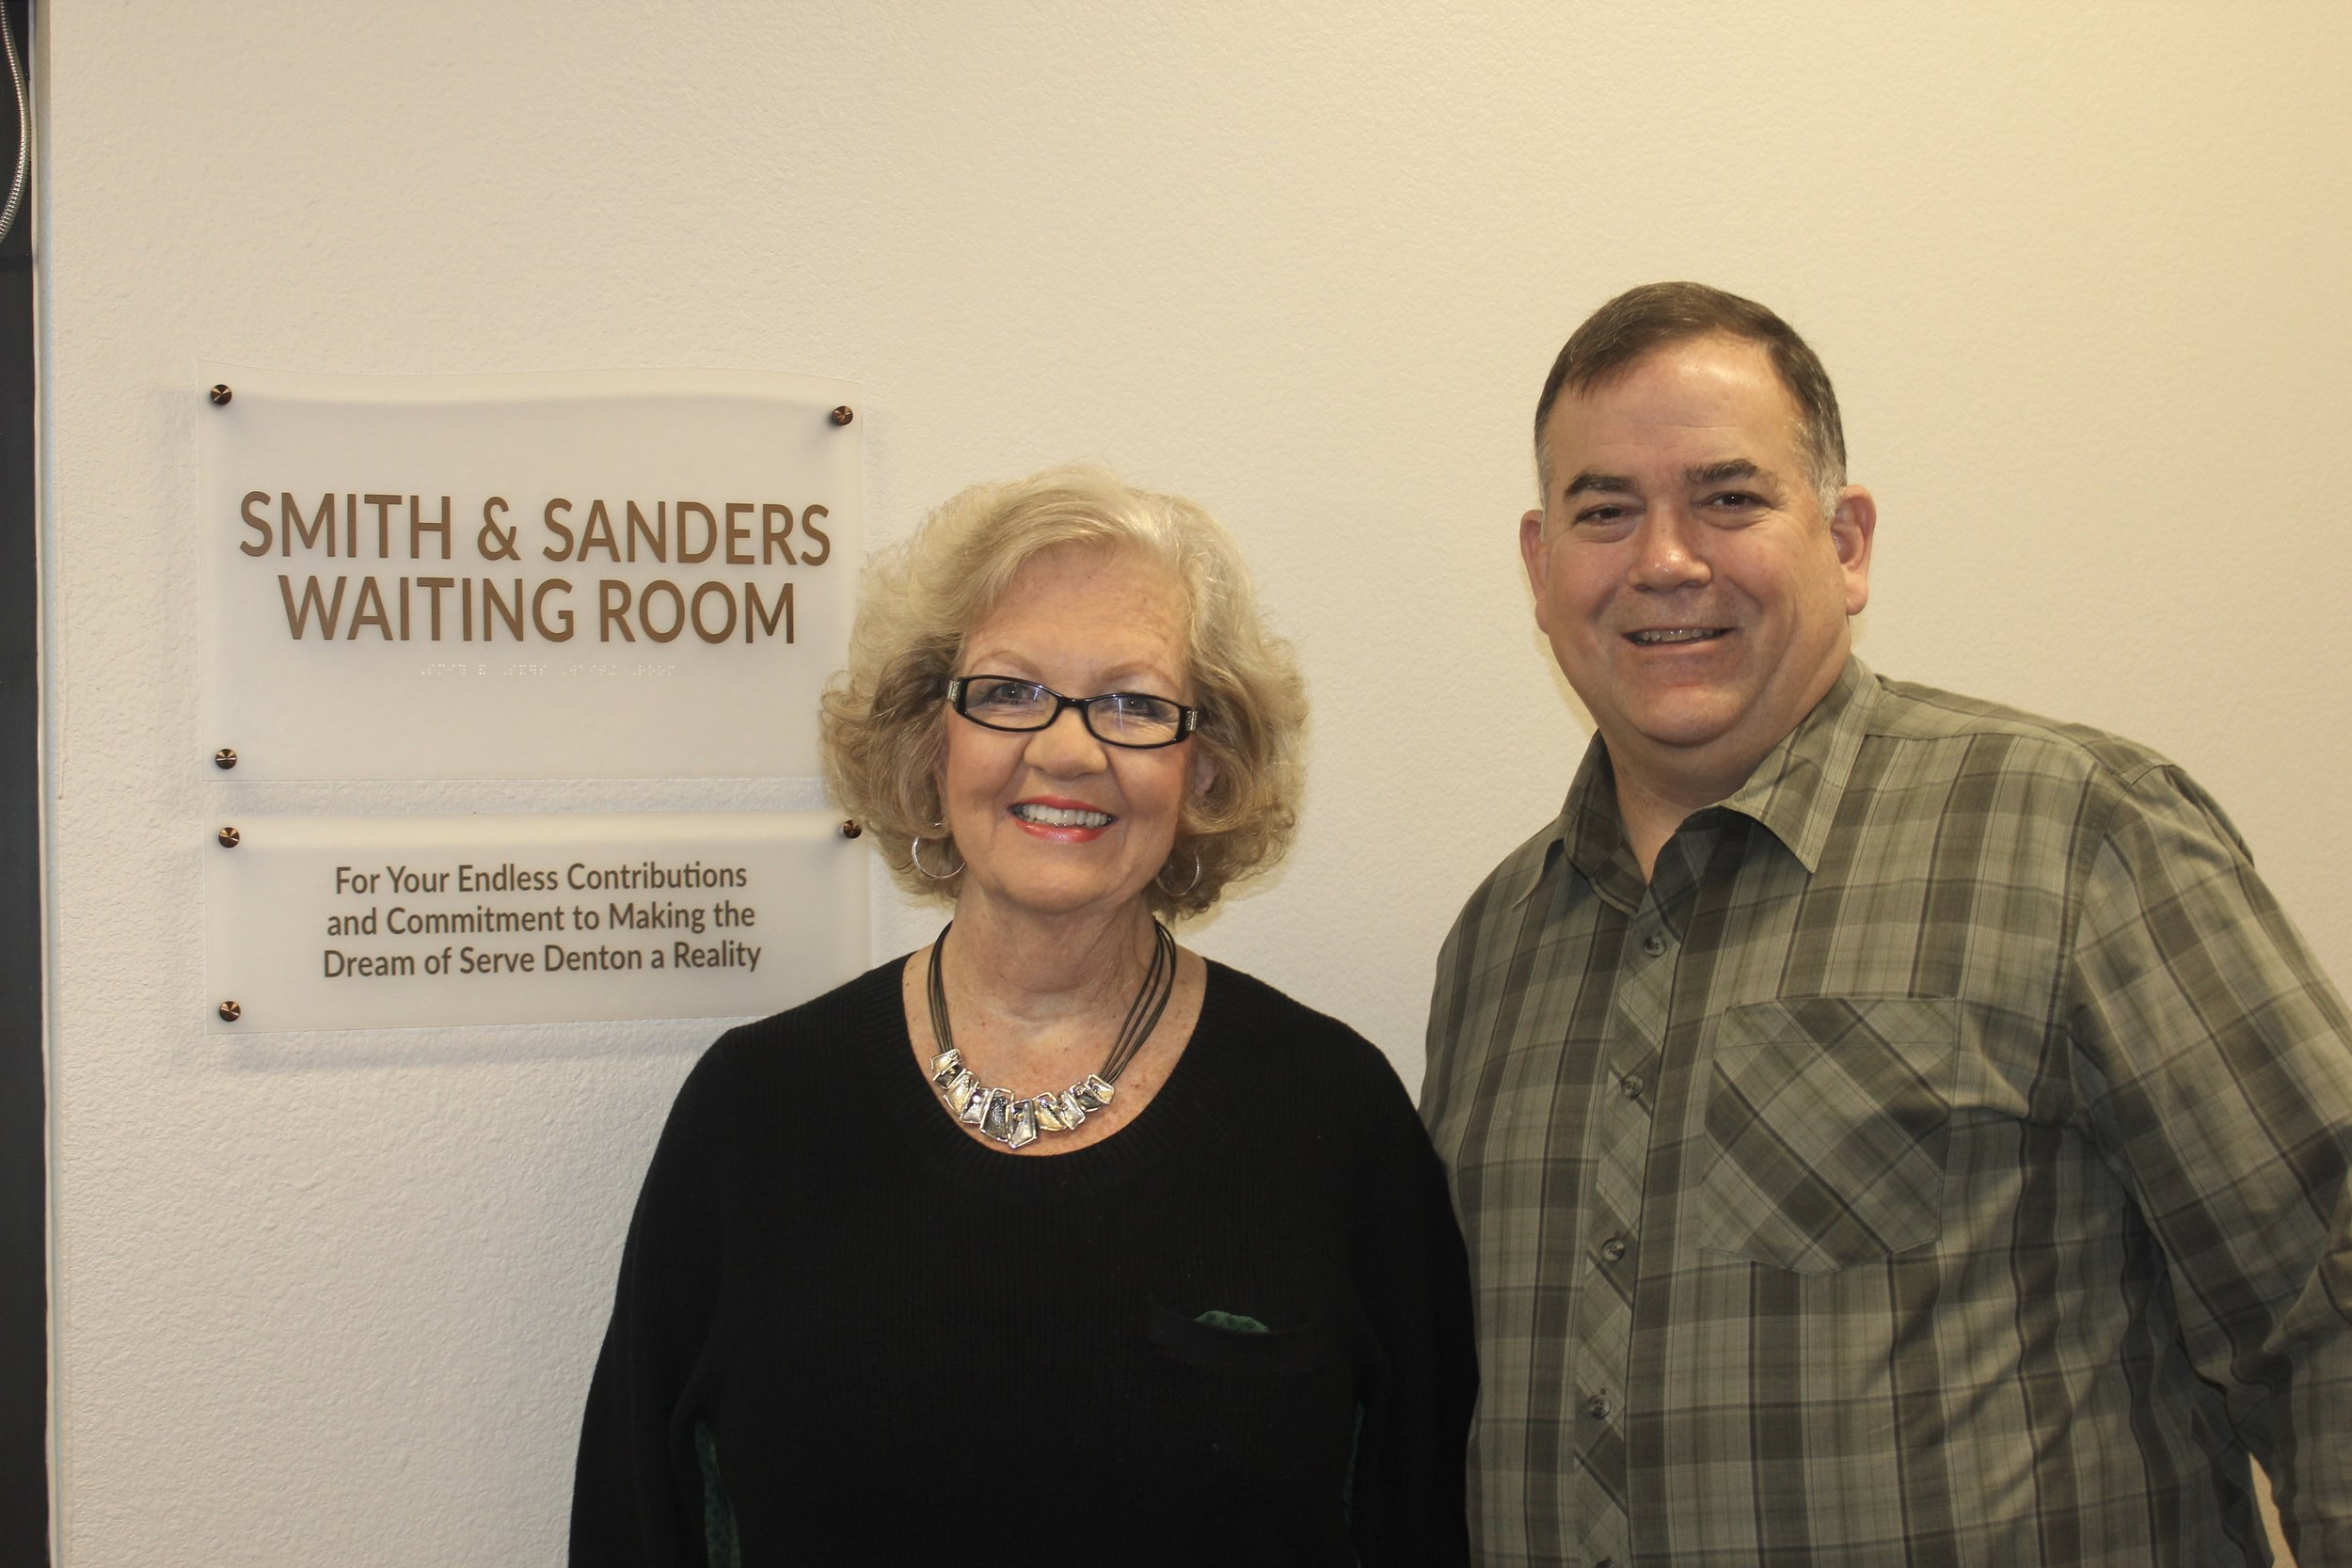 Priscilla Sanders and Pat Smith in the Serve Denton Center Waiting Room that was named after them in honor of their endless contributions.